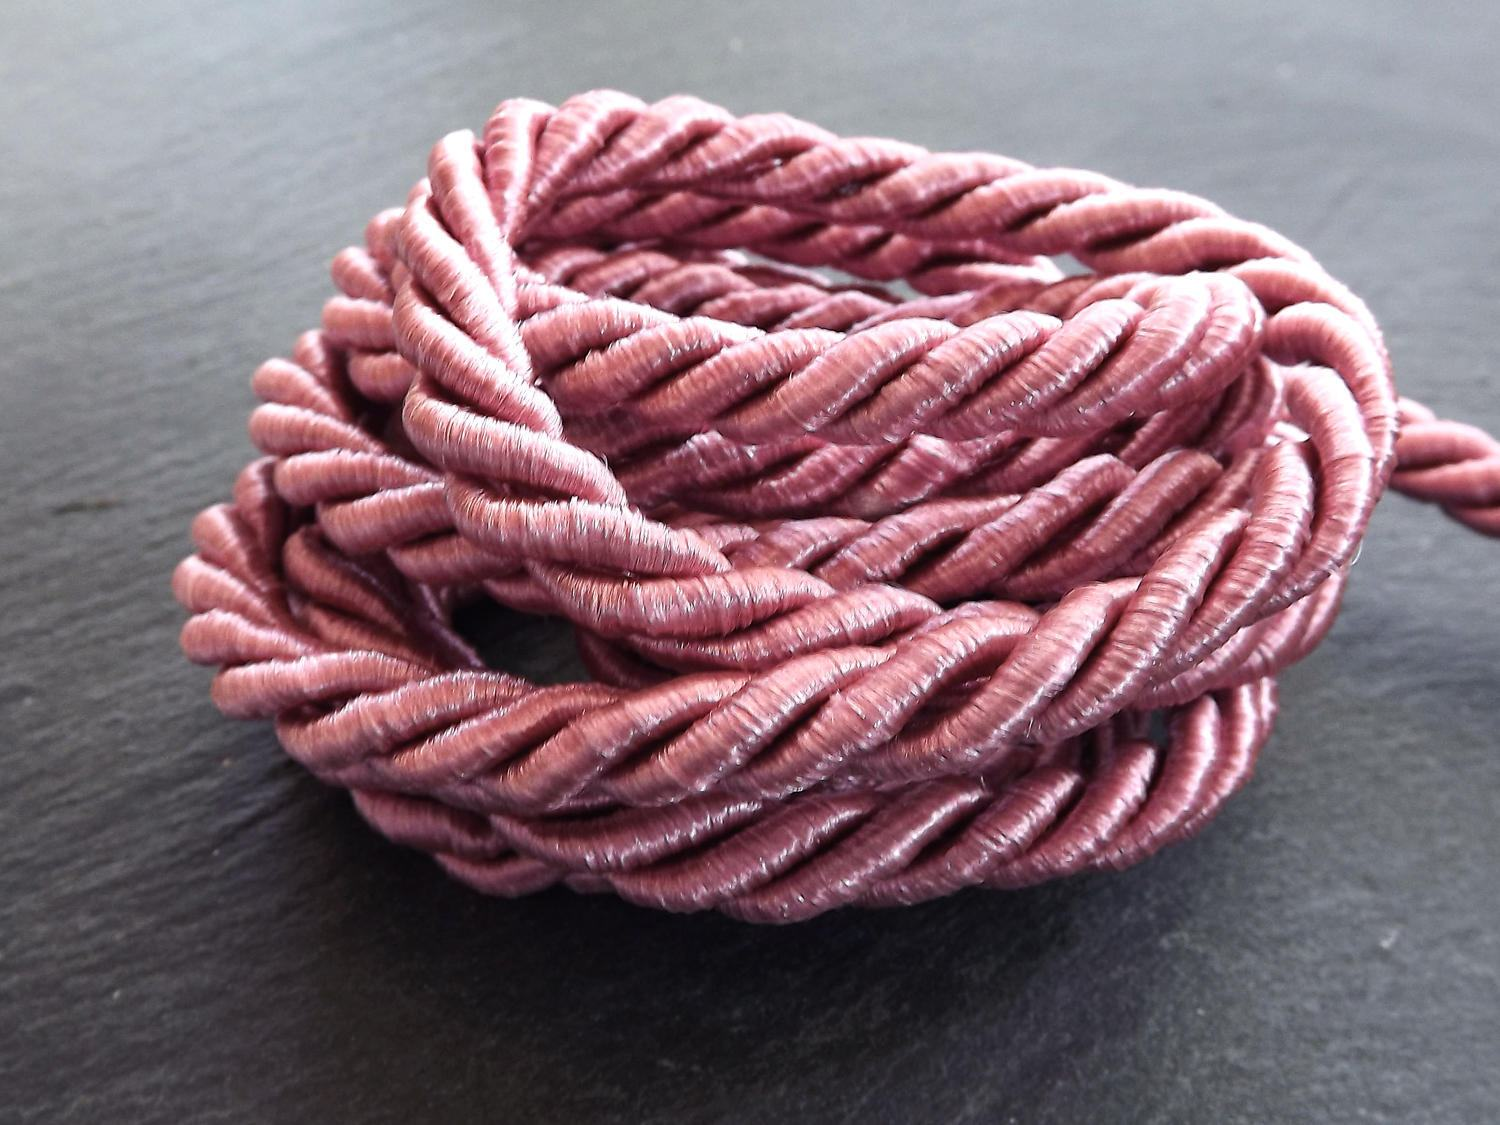 Crushed Rose Pink 7mm Twisted Rayon Satin Rope Silk Braid Cord | Etsy